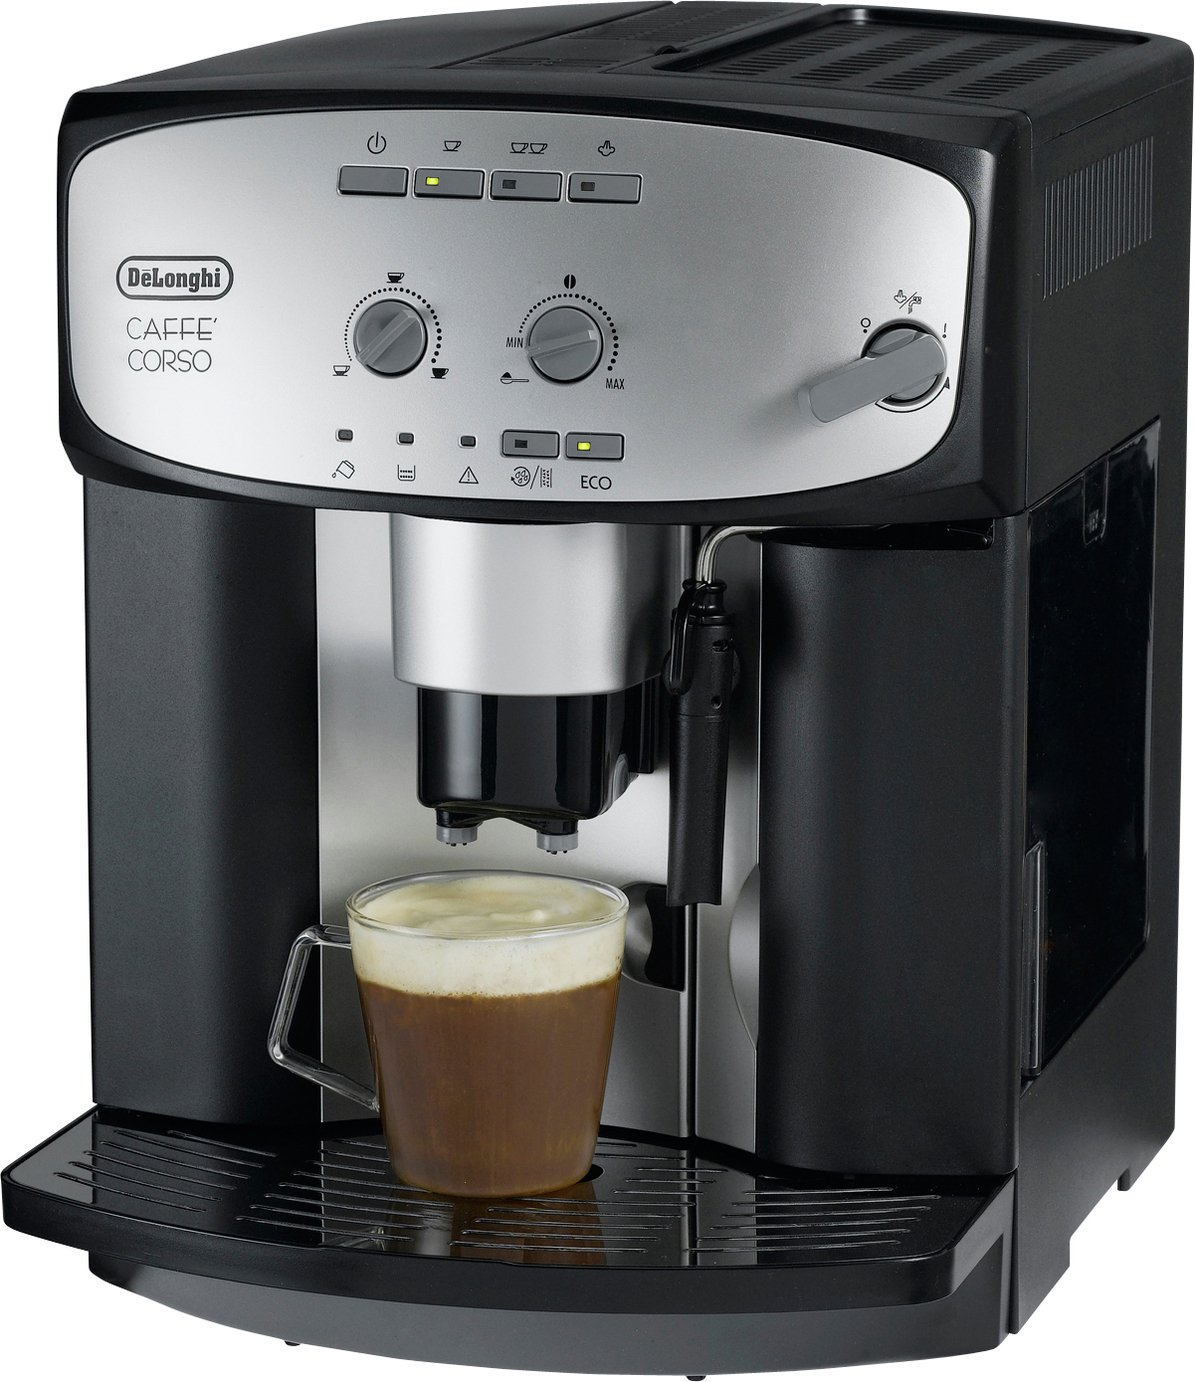 sale on de 39 longhi esam2800 cafe corso bean to cup. Black Bedroom Furniture Sets. Home Design Ideas